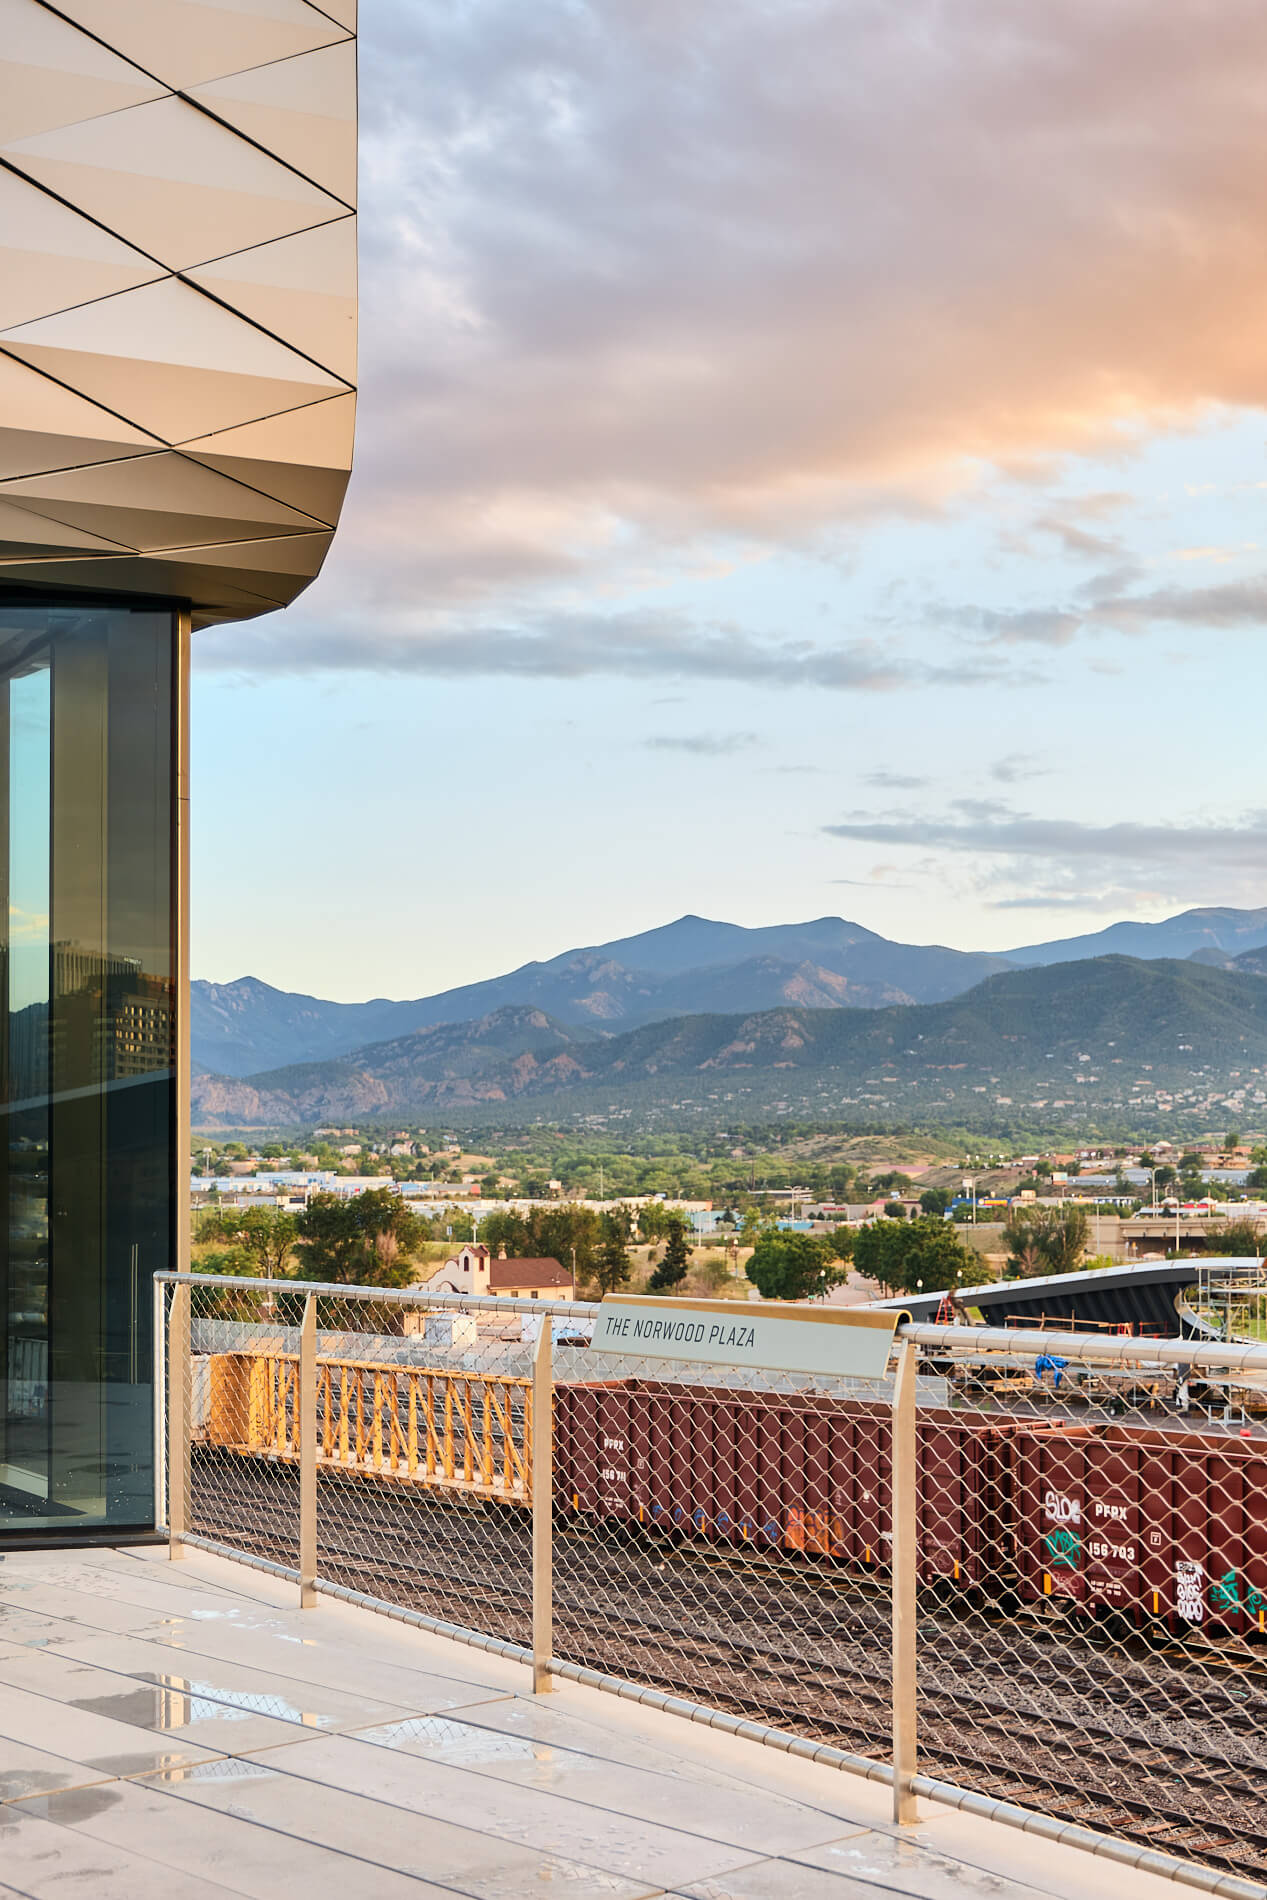 Balcony overlooking a mountain range at sunset